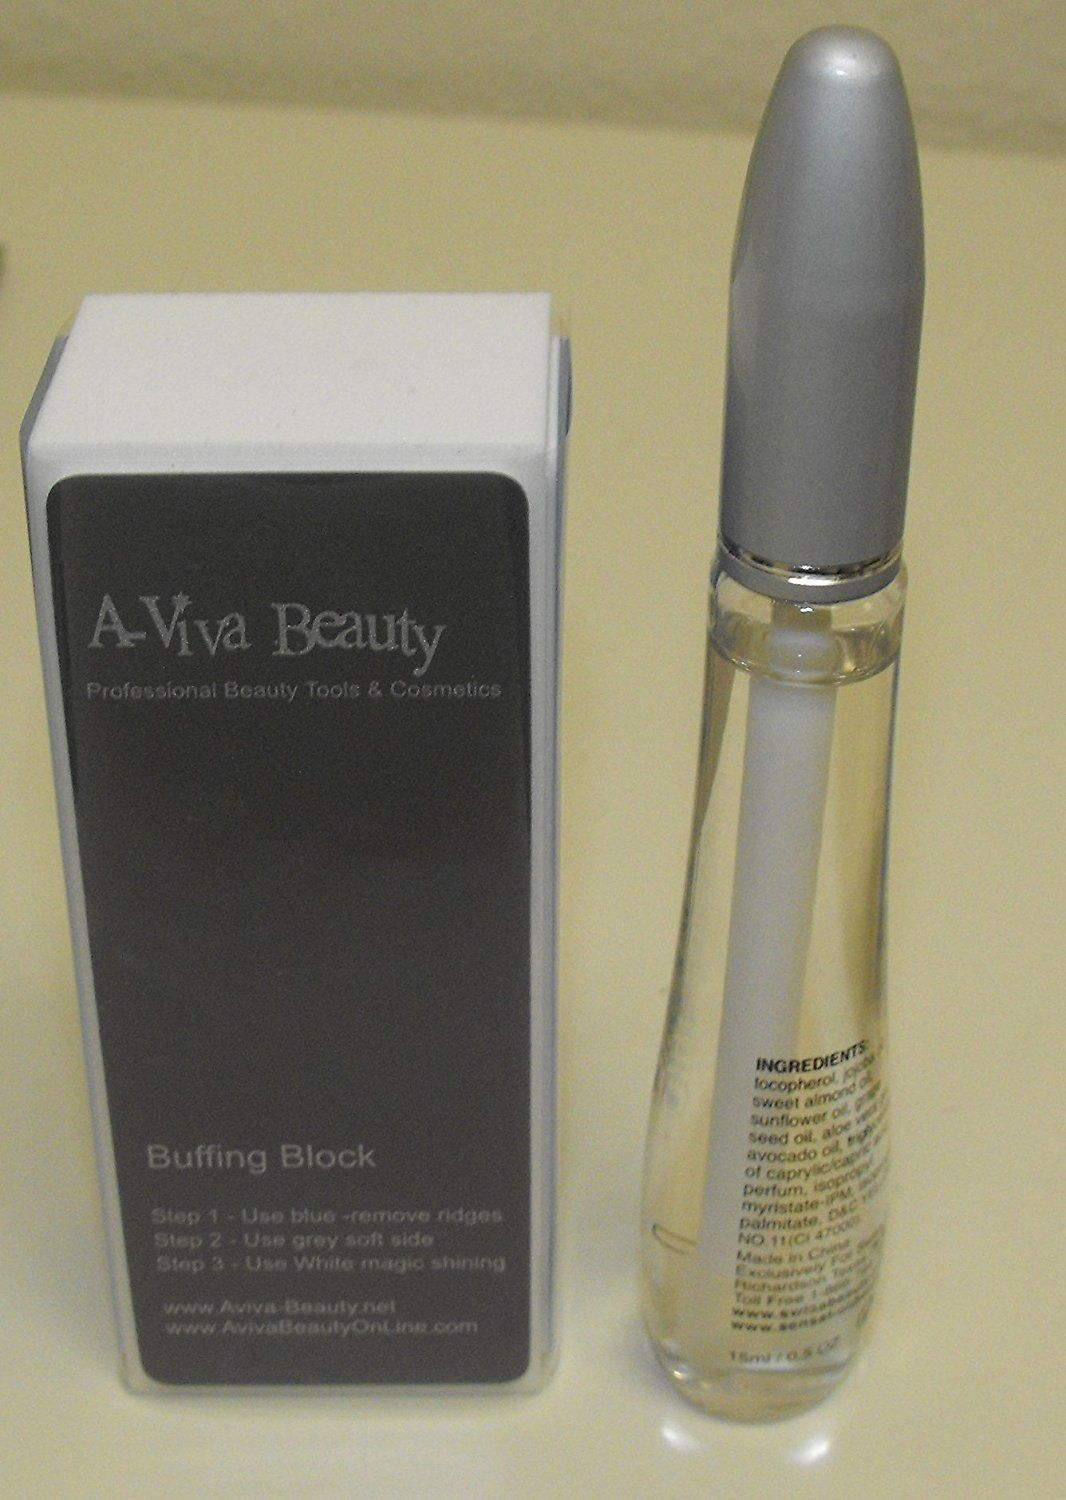 Swisa Cuticle Oil  A-viva Silky Majic 4 Way Nail Buffer for Shiney Nails >>> You can get more details by clicking on the image.